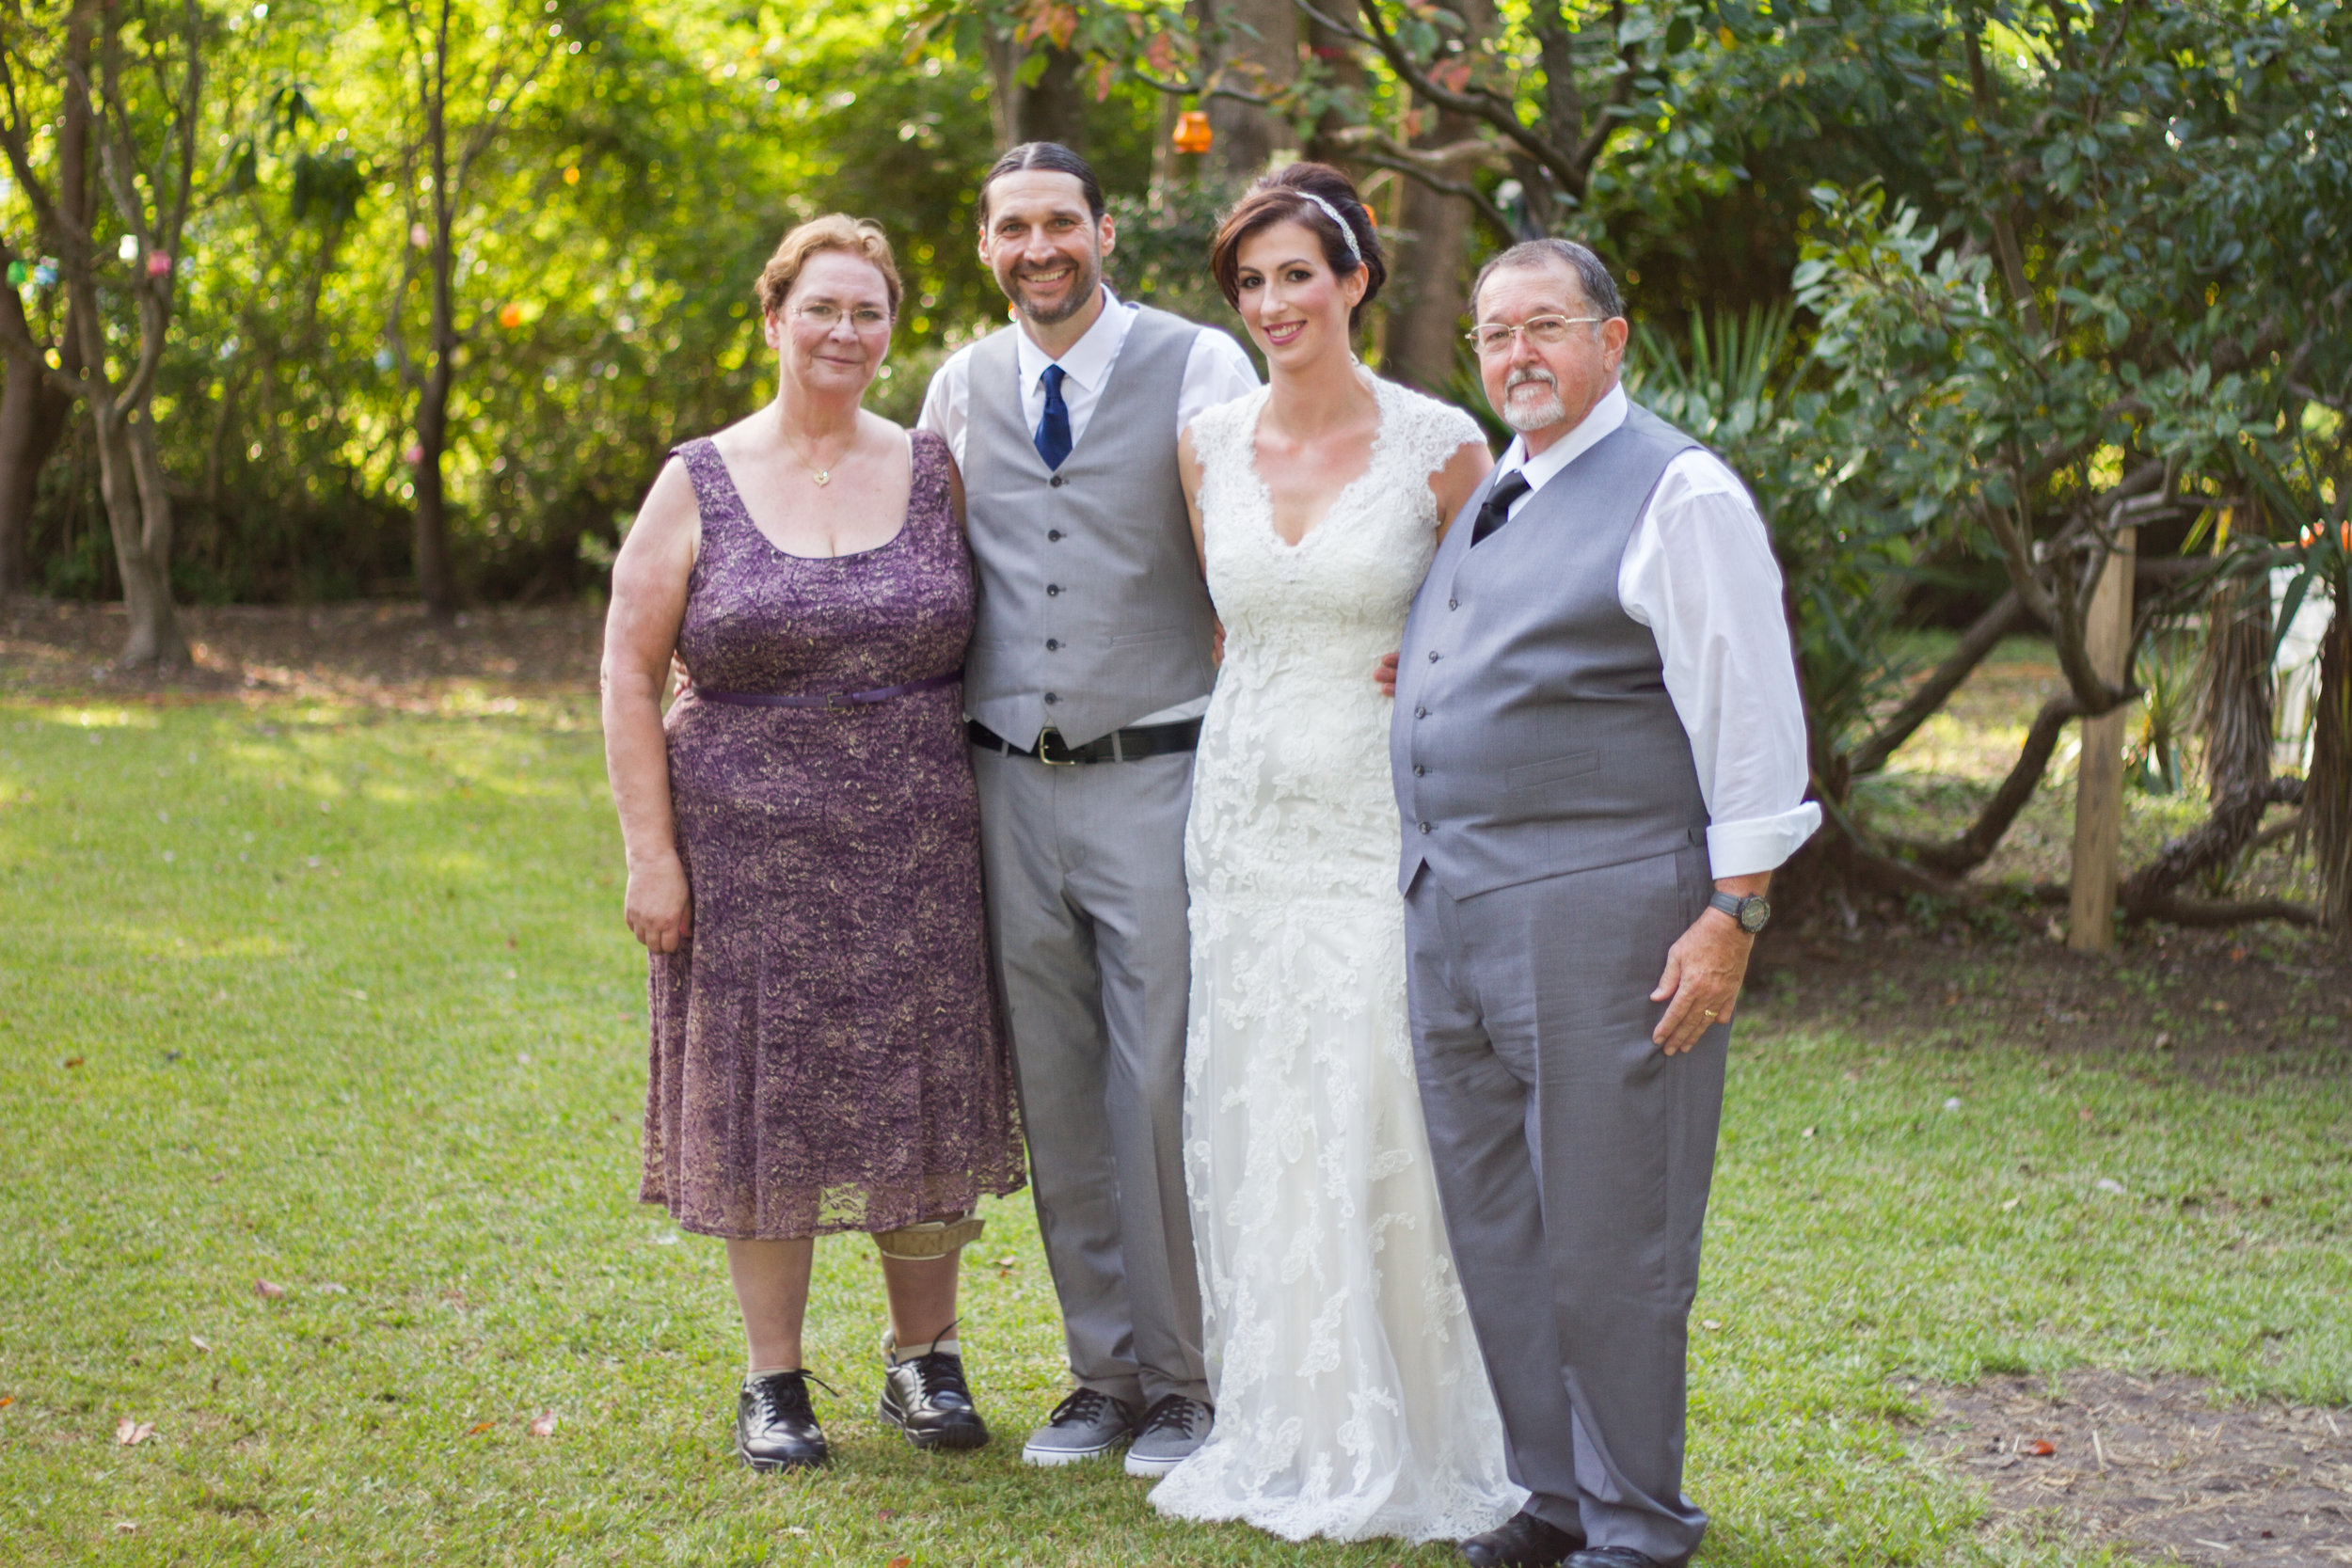 Jacqueline and Shawn Wedding (321 of 597).jpg